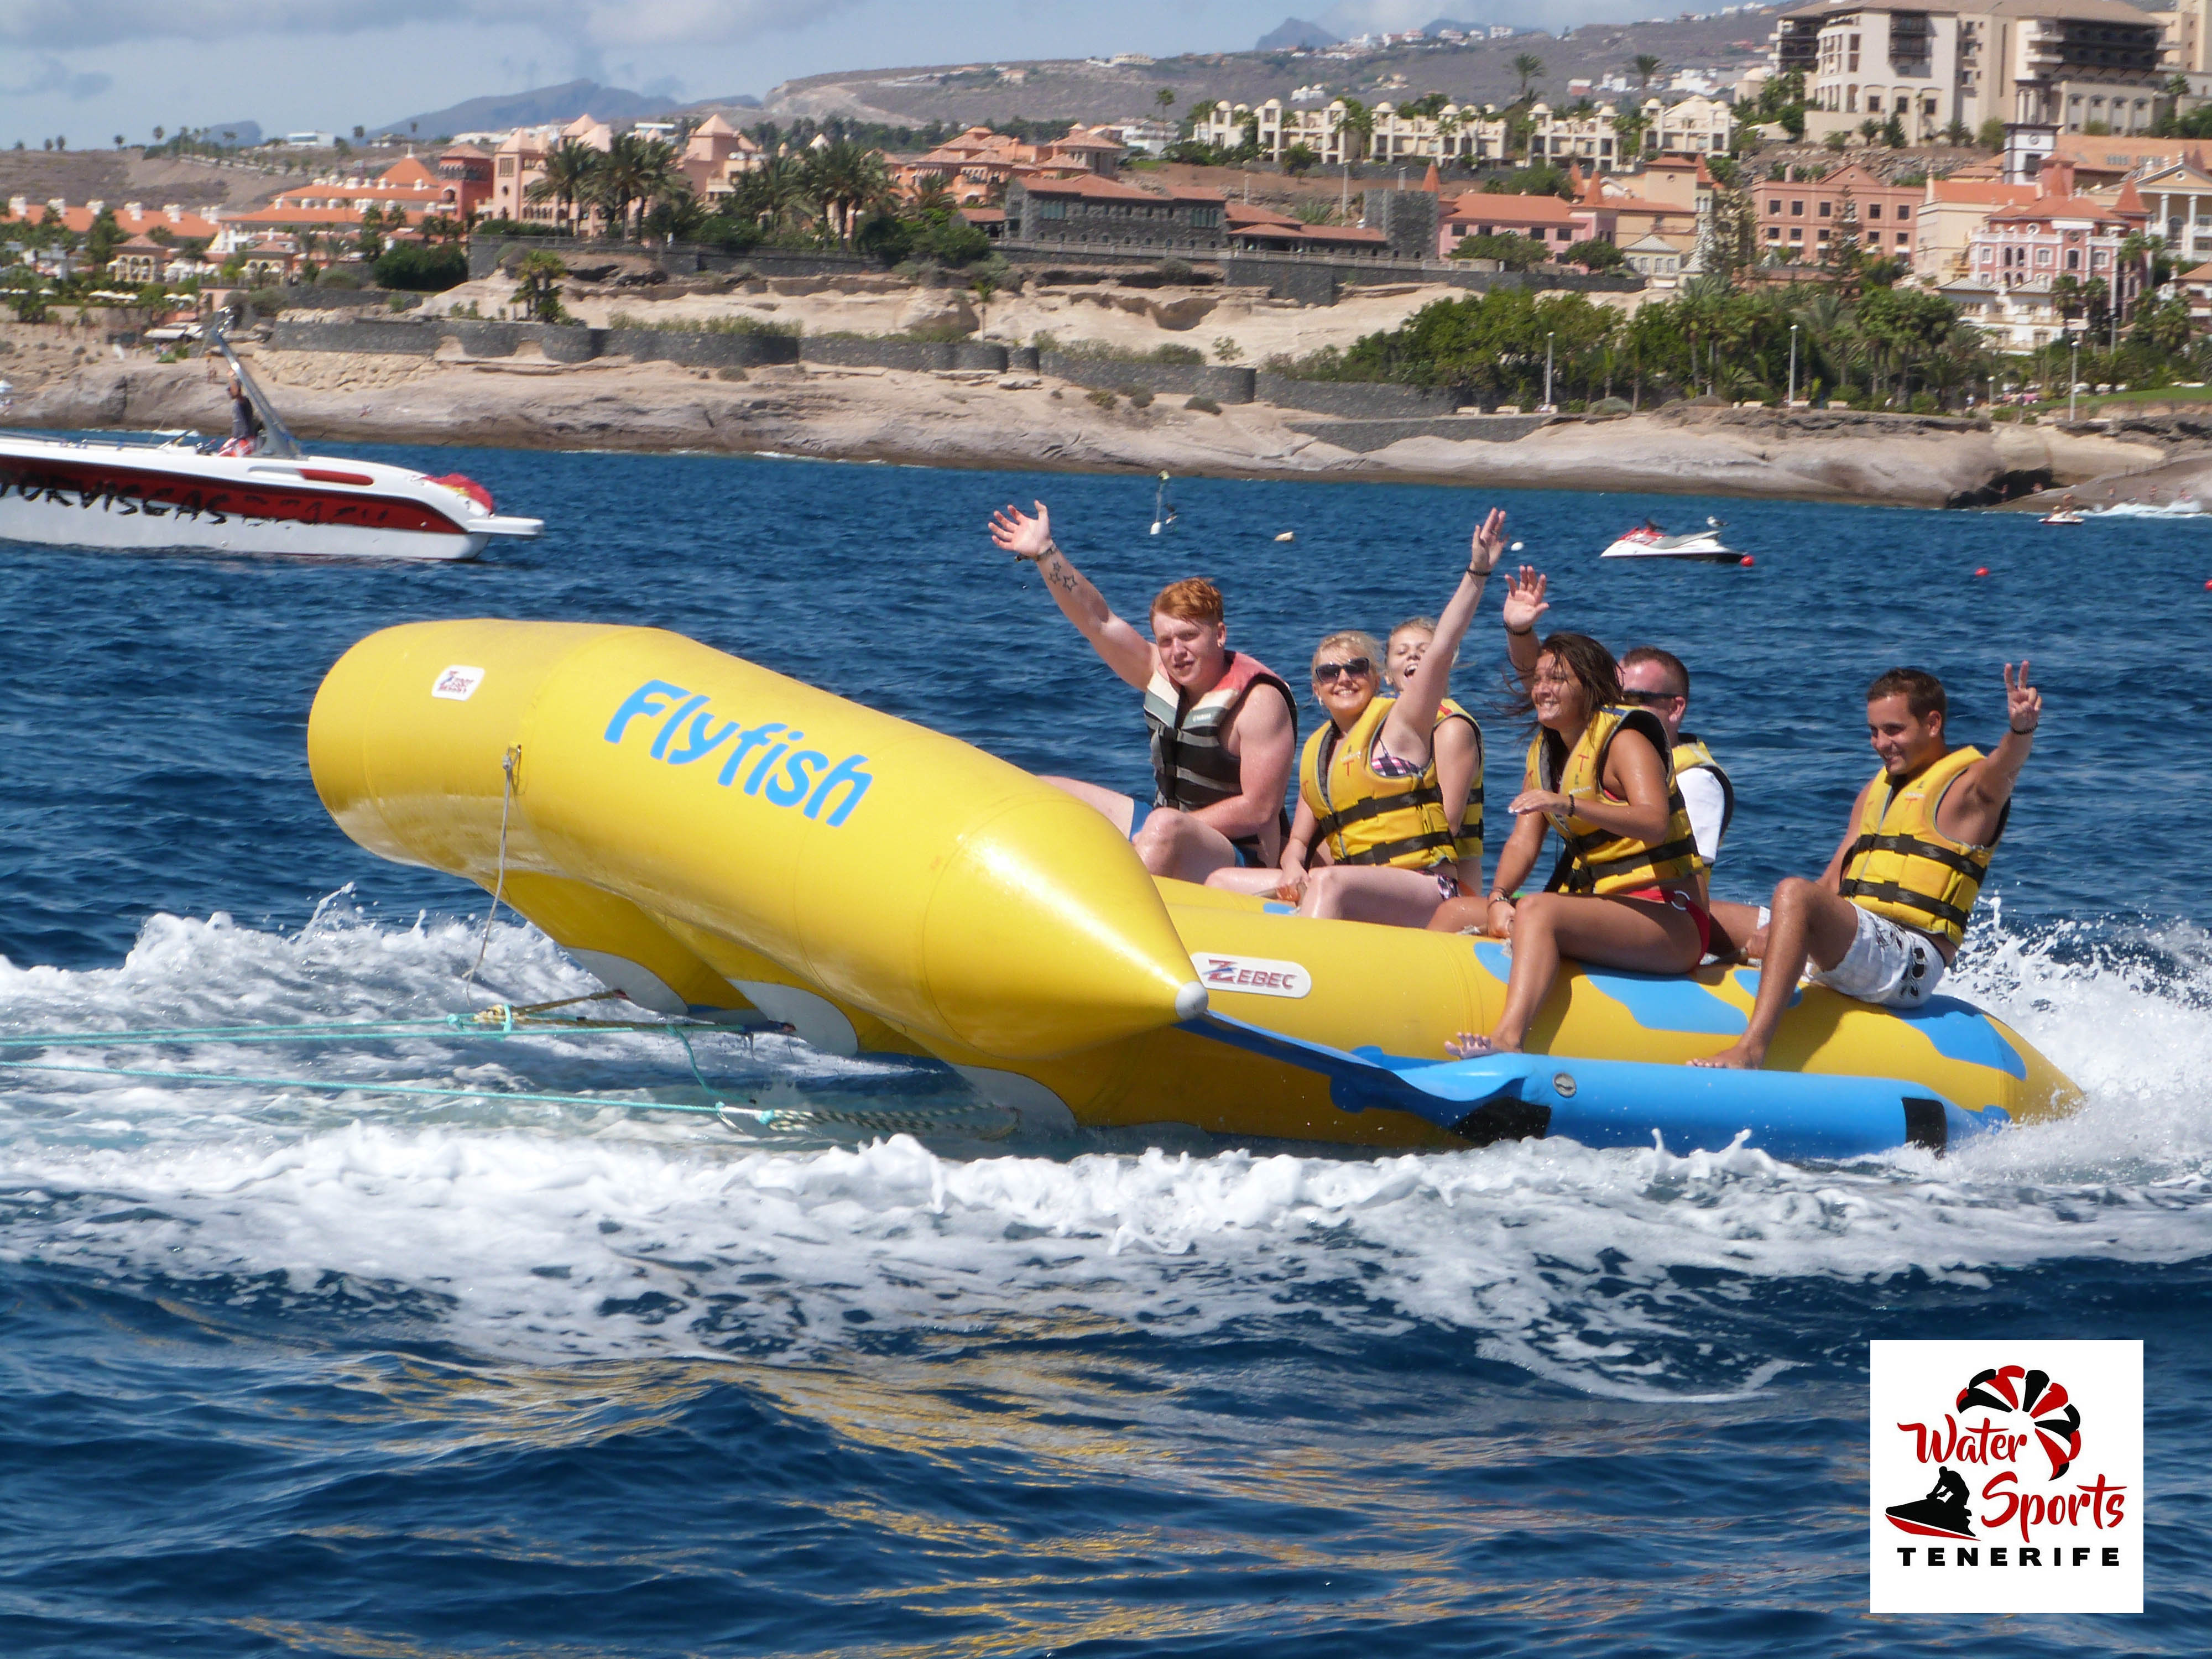 flyfish water sports and activities in fañabe in el medano